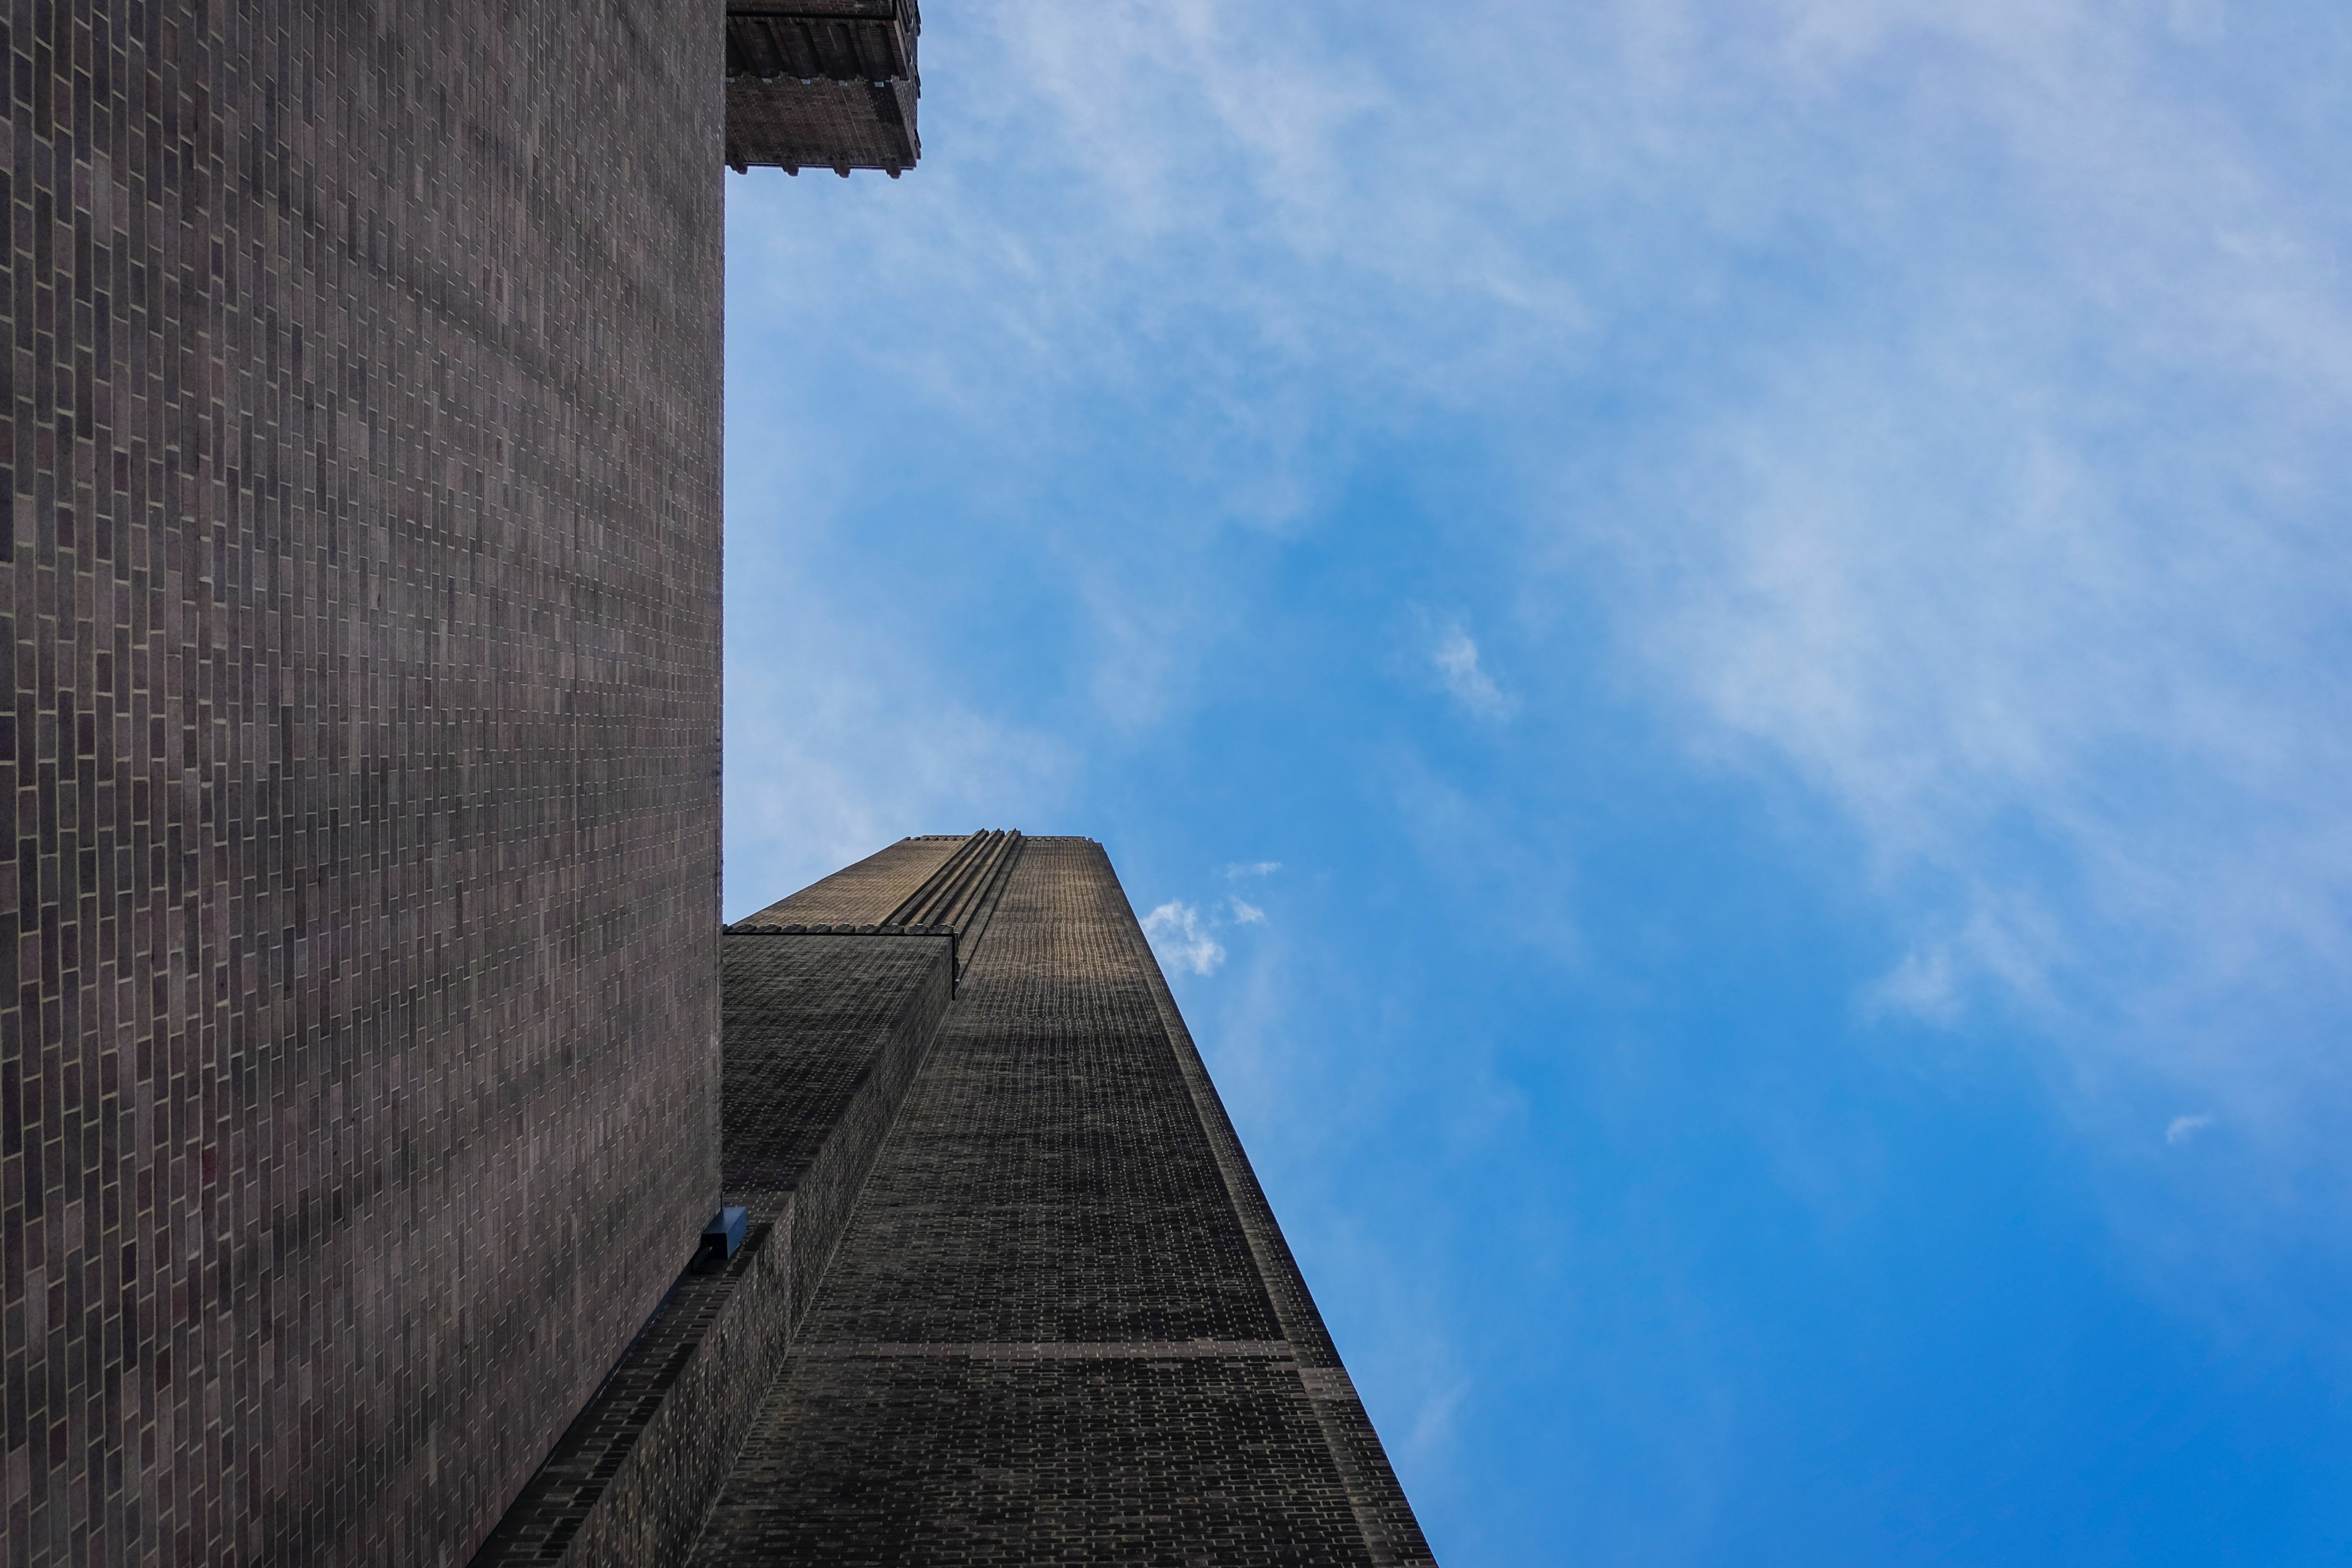 a tall brick tower with a clock on the side of a building